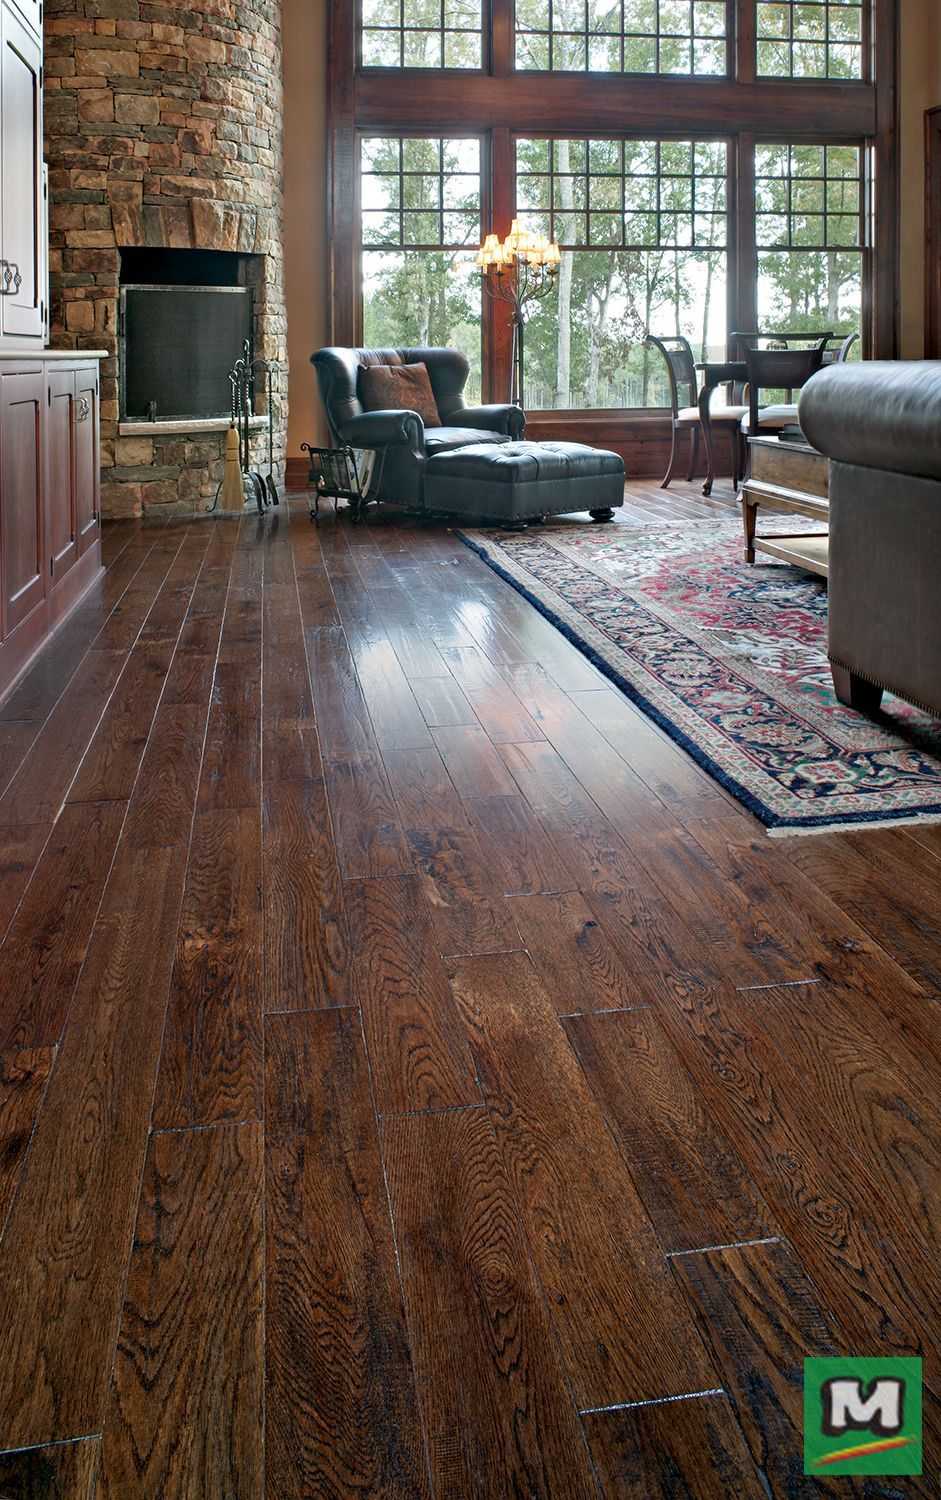 For a floor that's full of warmth and character, try Great